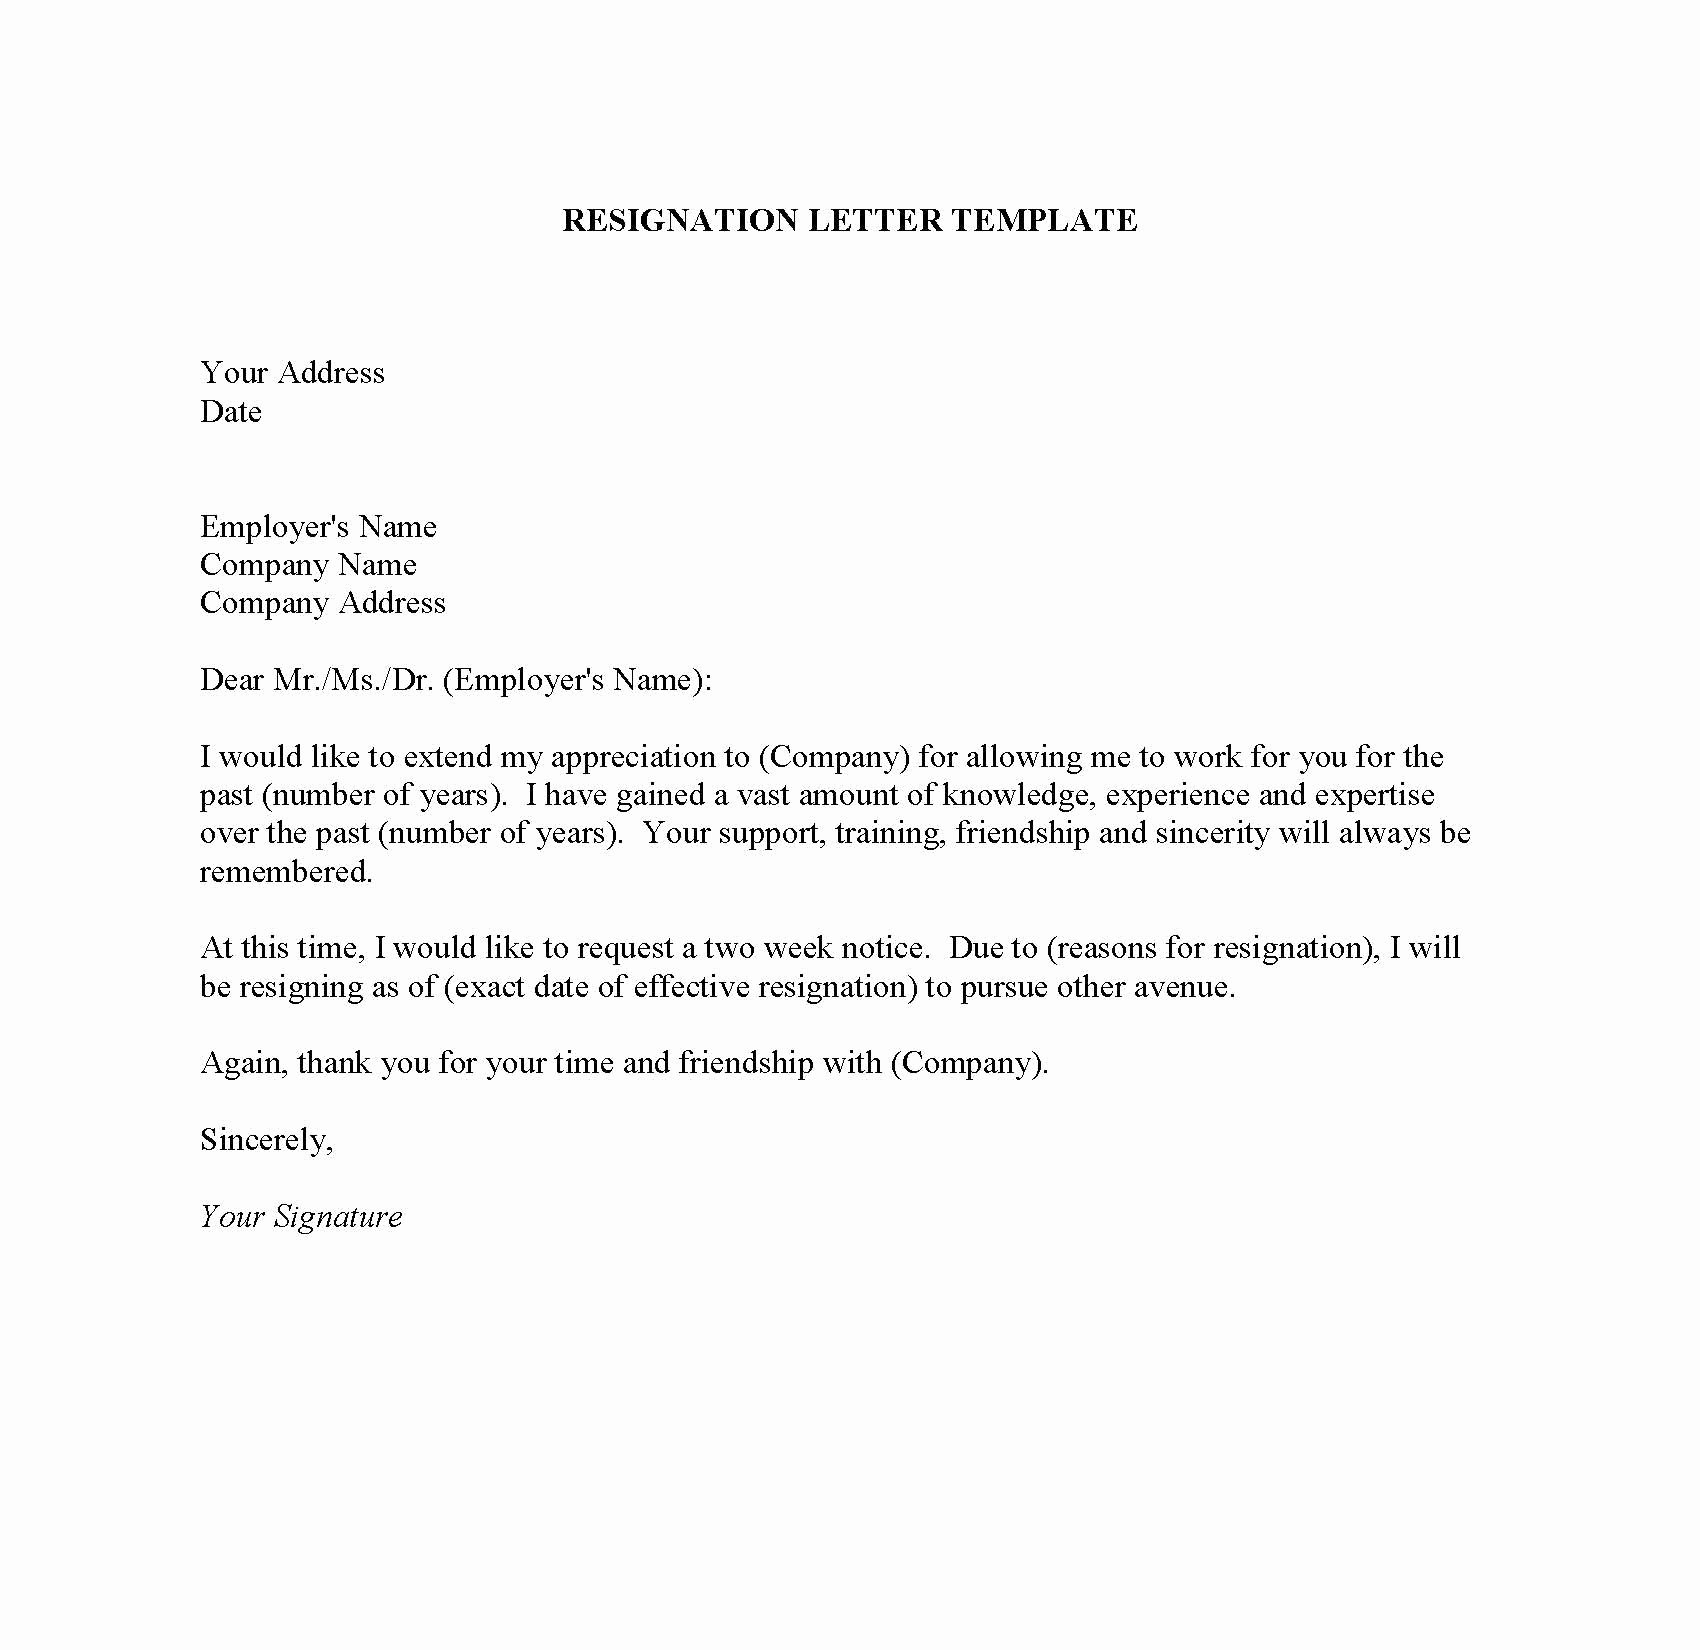 Resignation 2 Weeks Notice Best Of Resignation Letter Sample Due to the Travel – Word